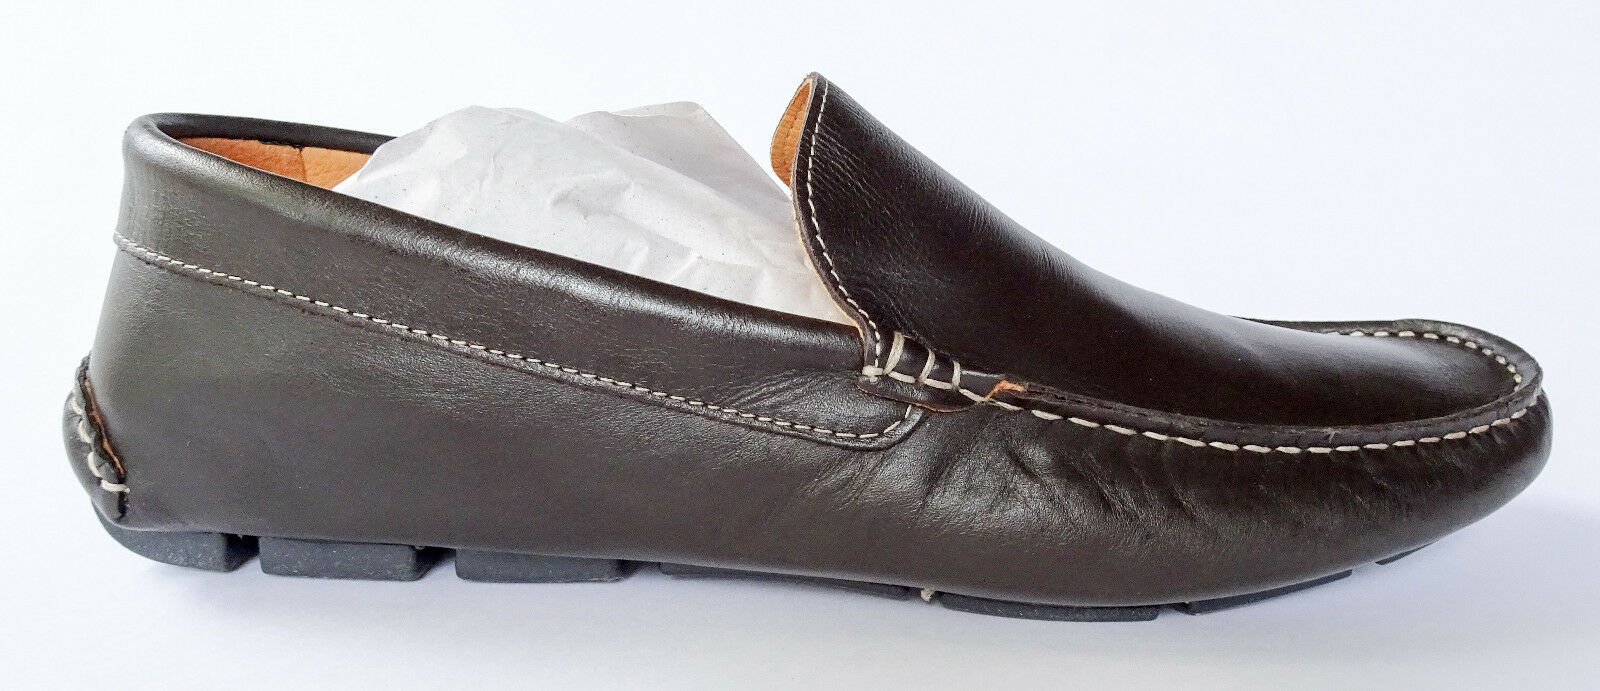 🔥 Barneys New York Brown Leather Venetian Drivers Loafers 9 NIB FAST SHIPPING!